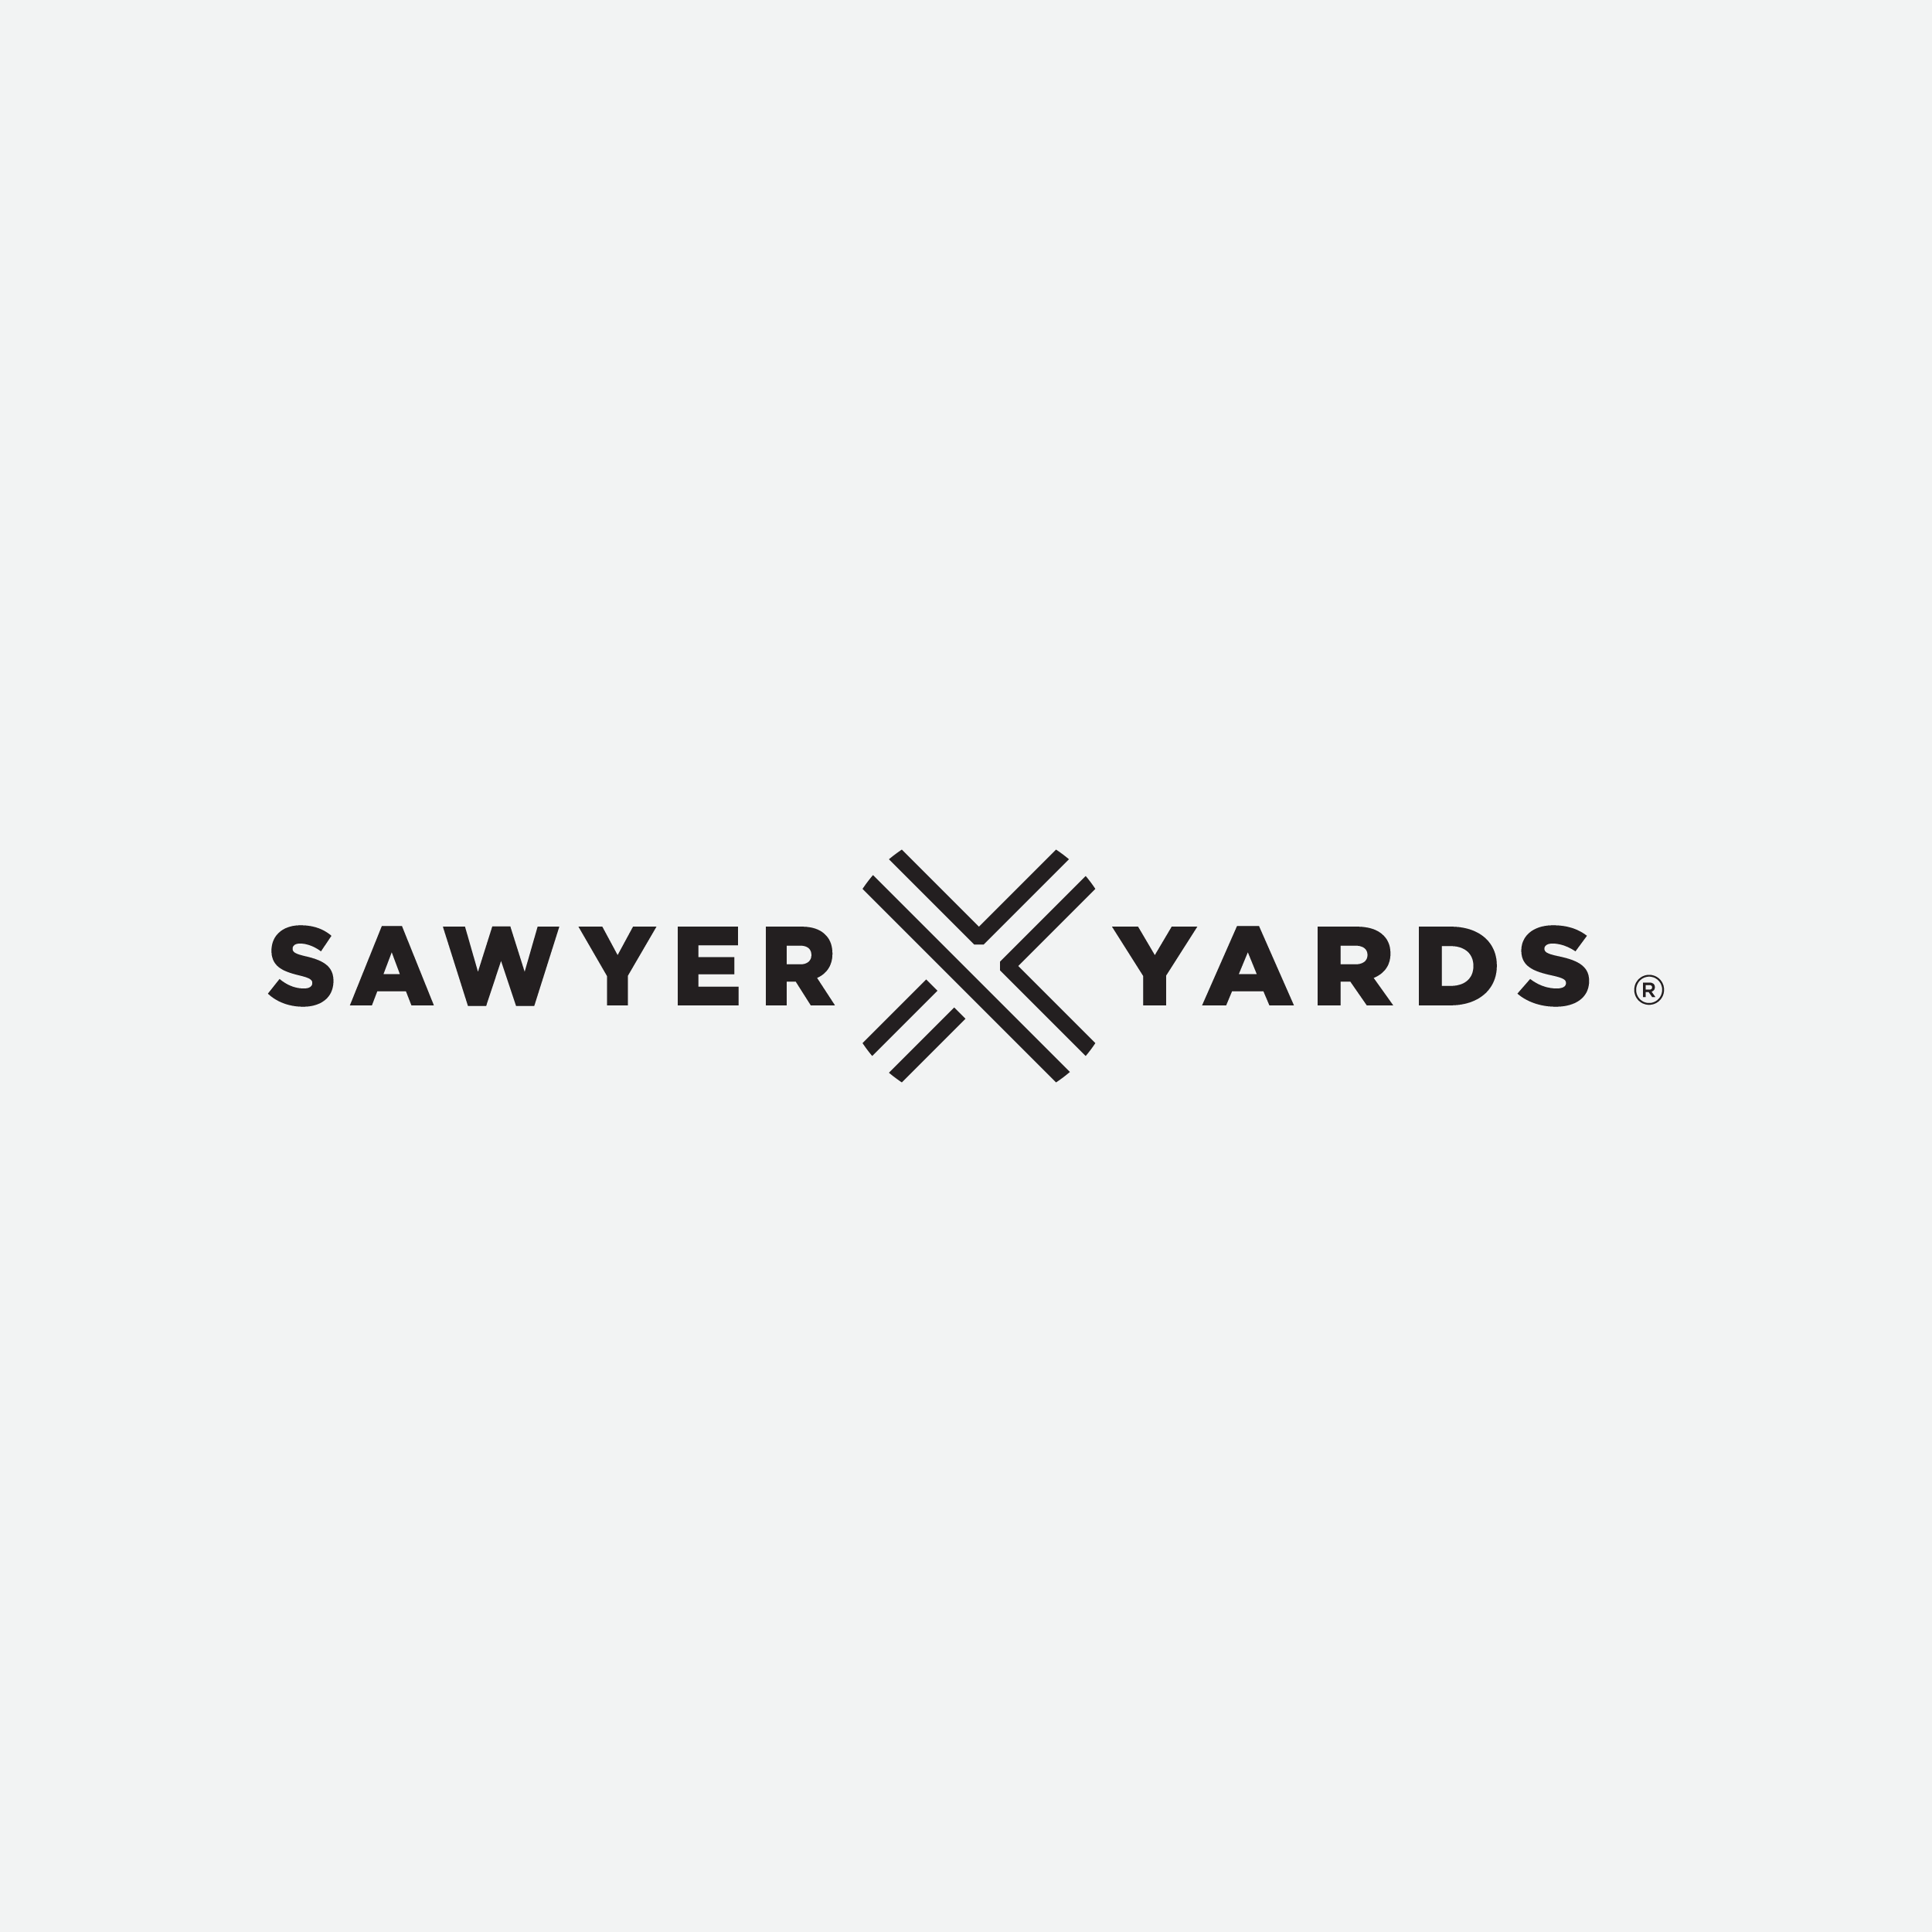 Sawyer Yards - 2015